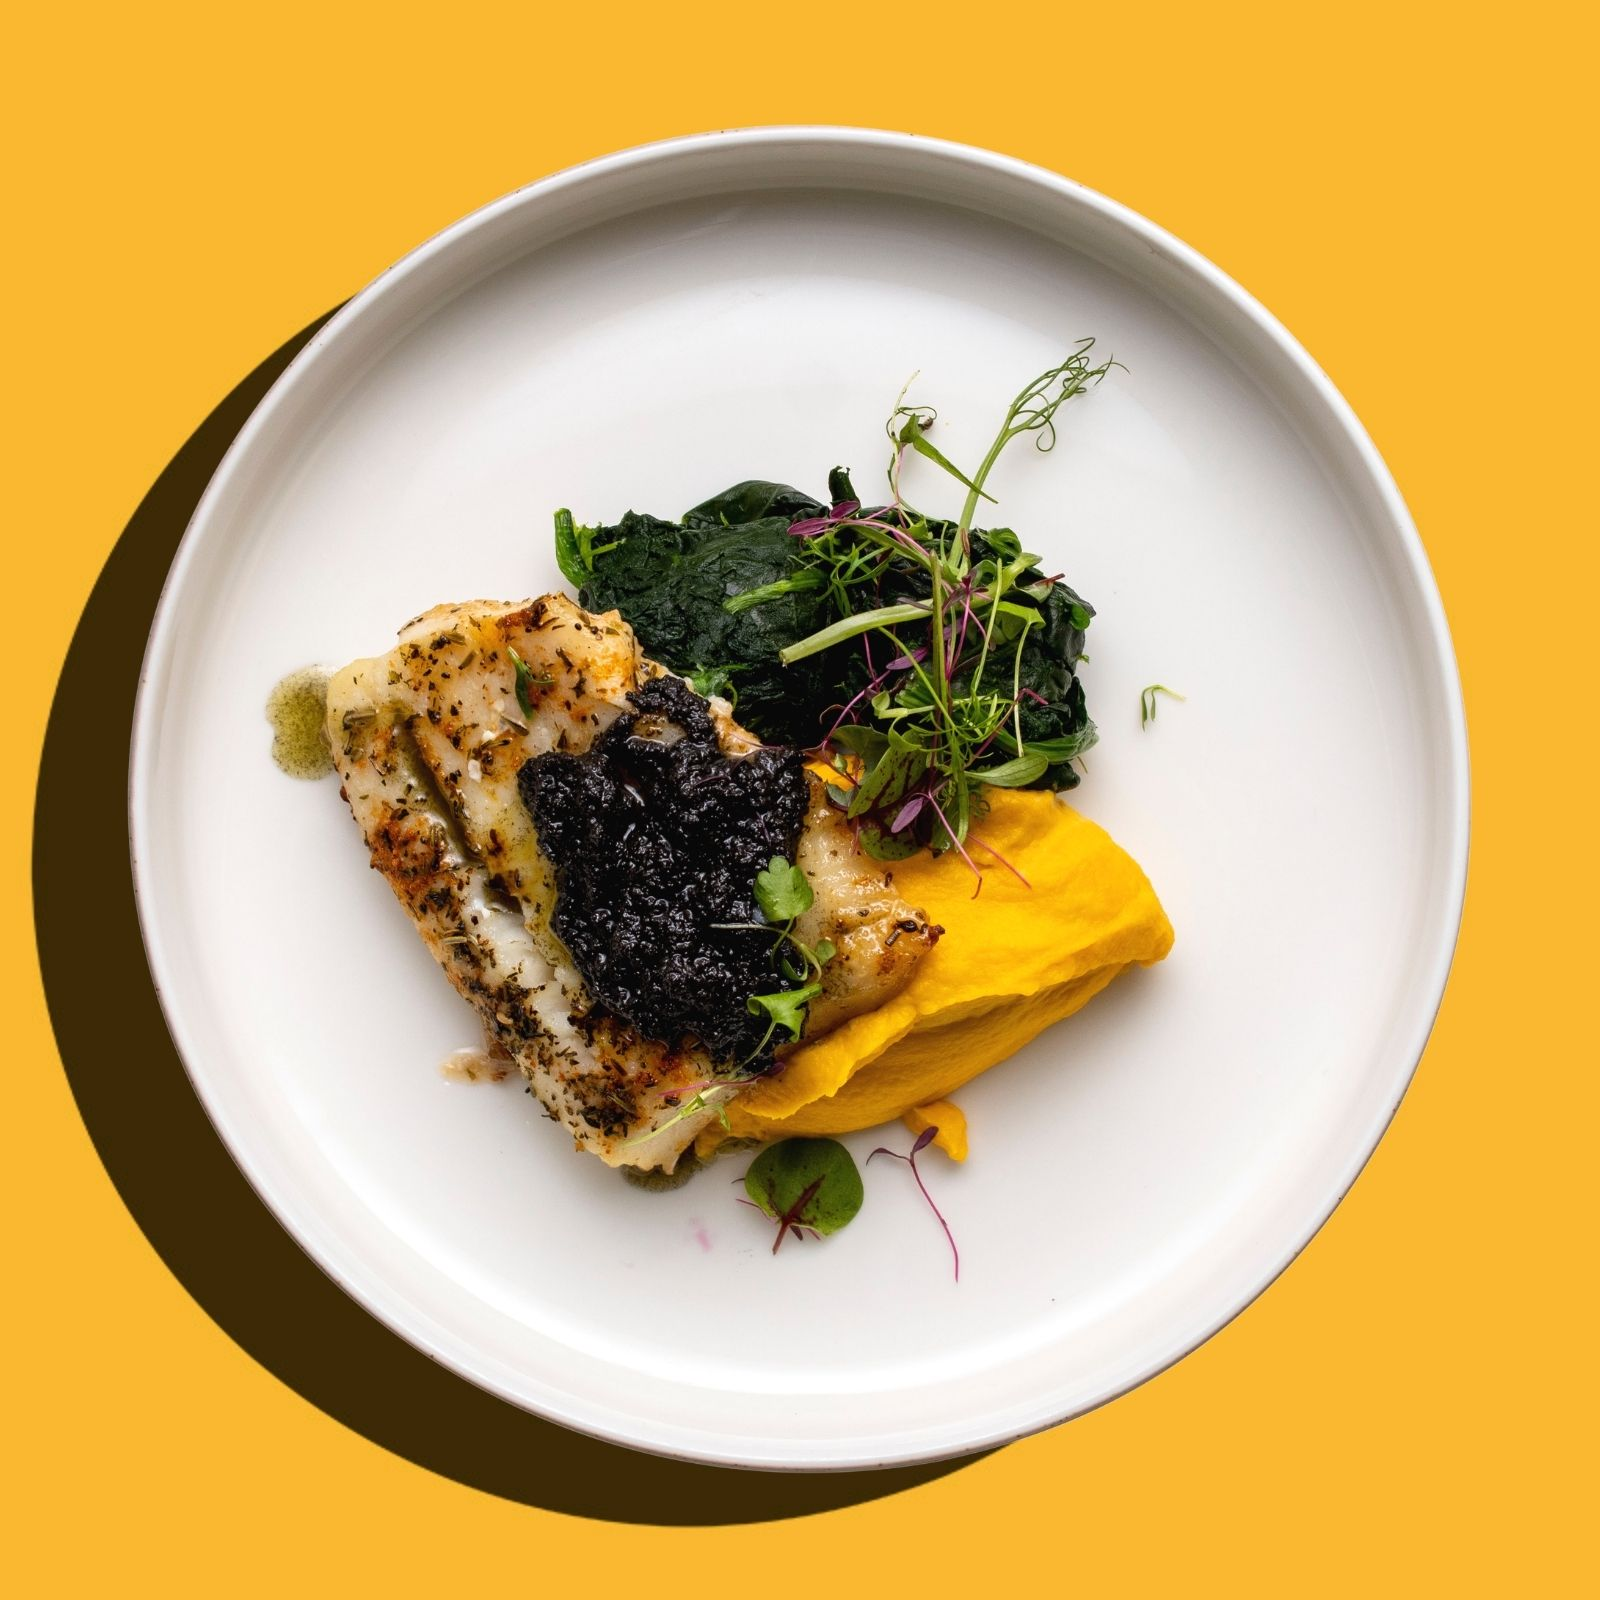 Baked Atlantic Cod Fish with Olive Tapenade (Keto- Friendly)